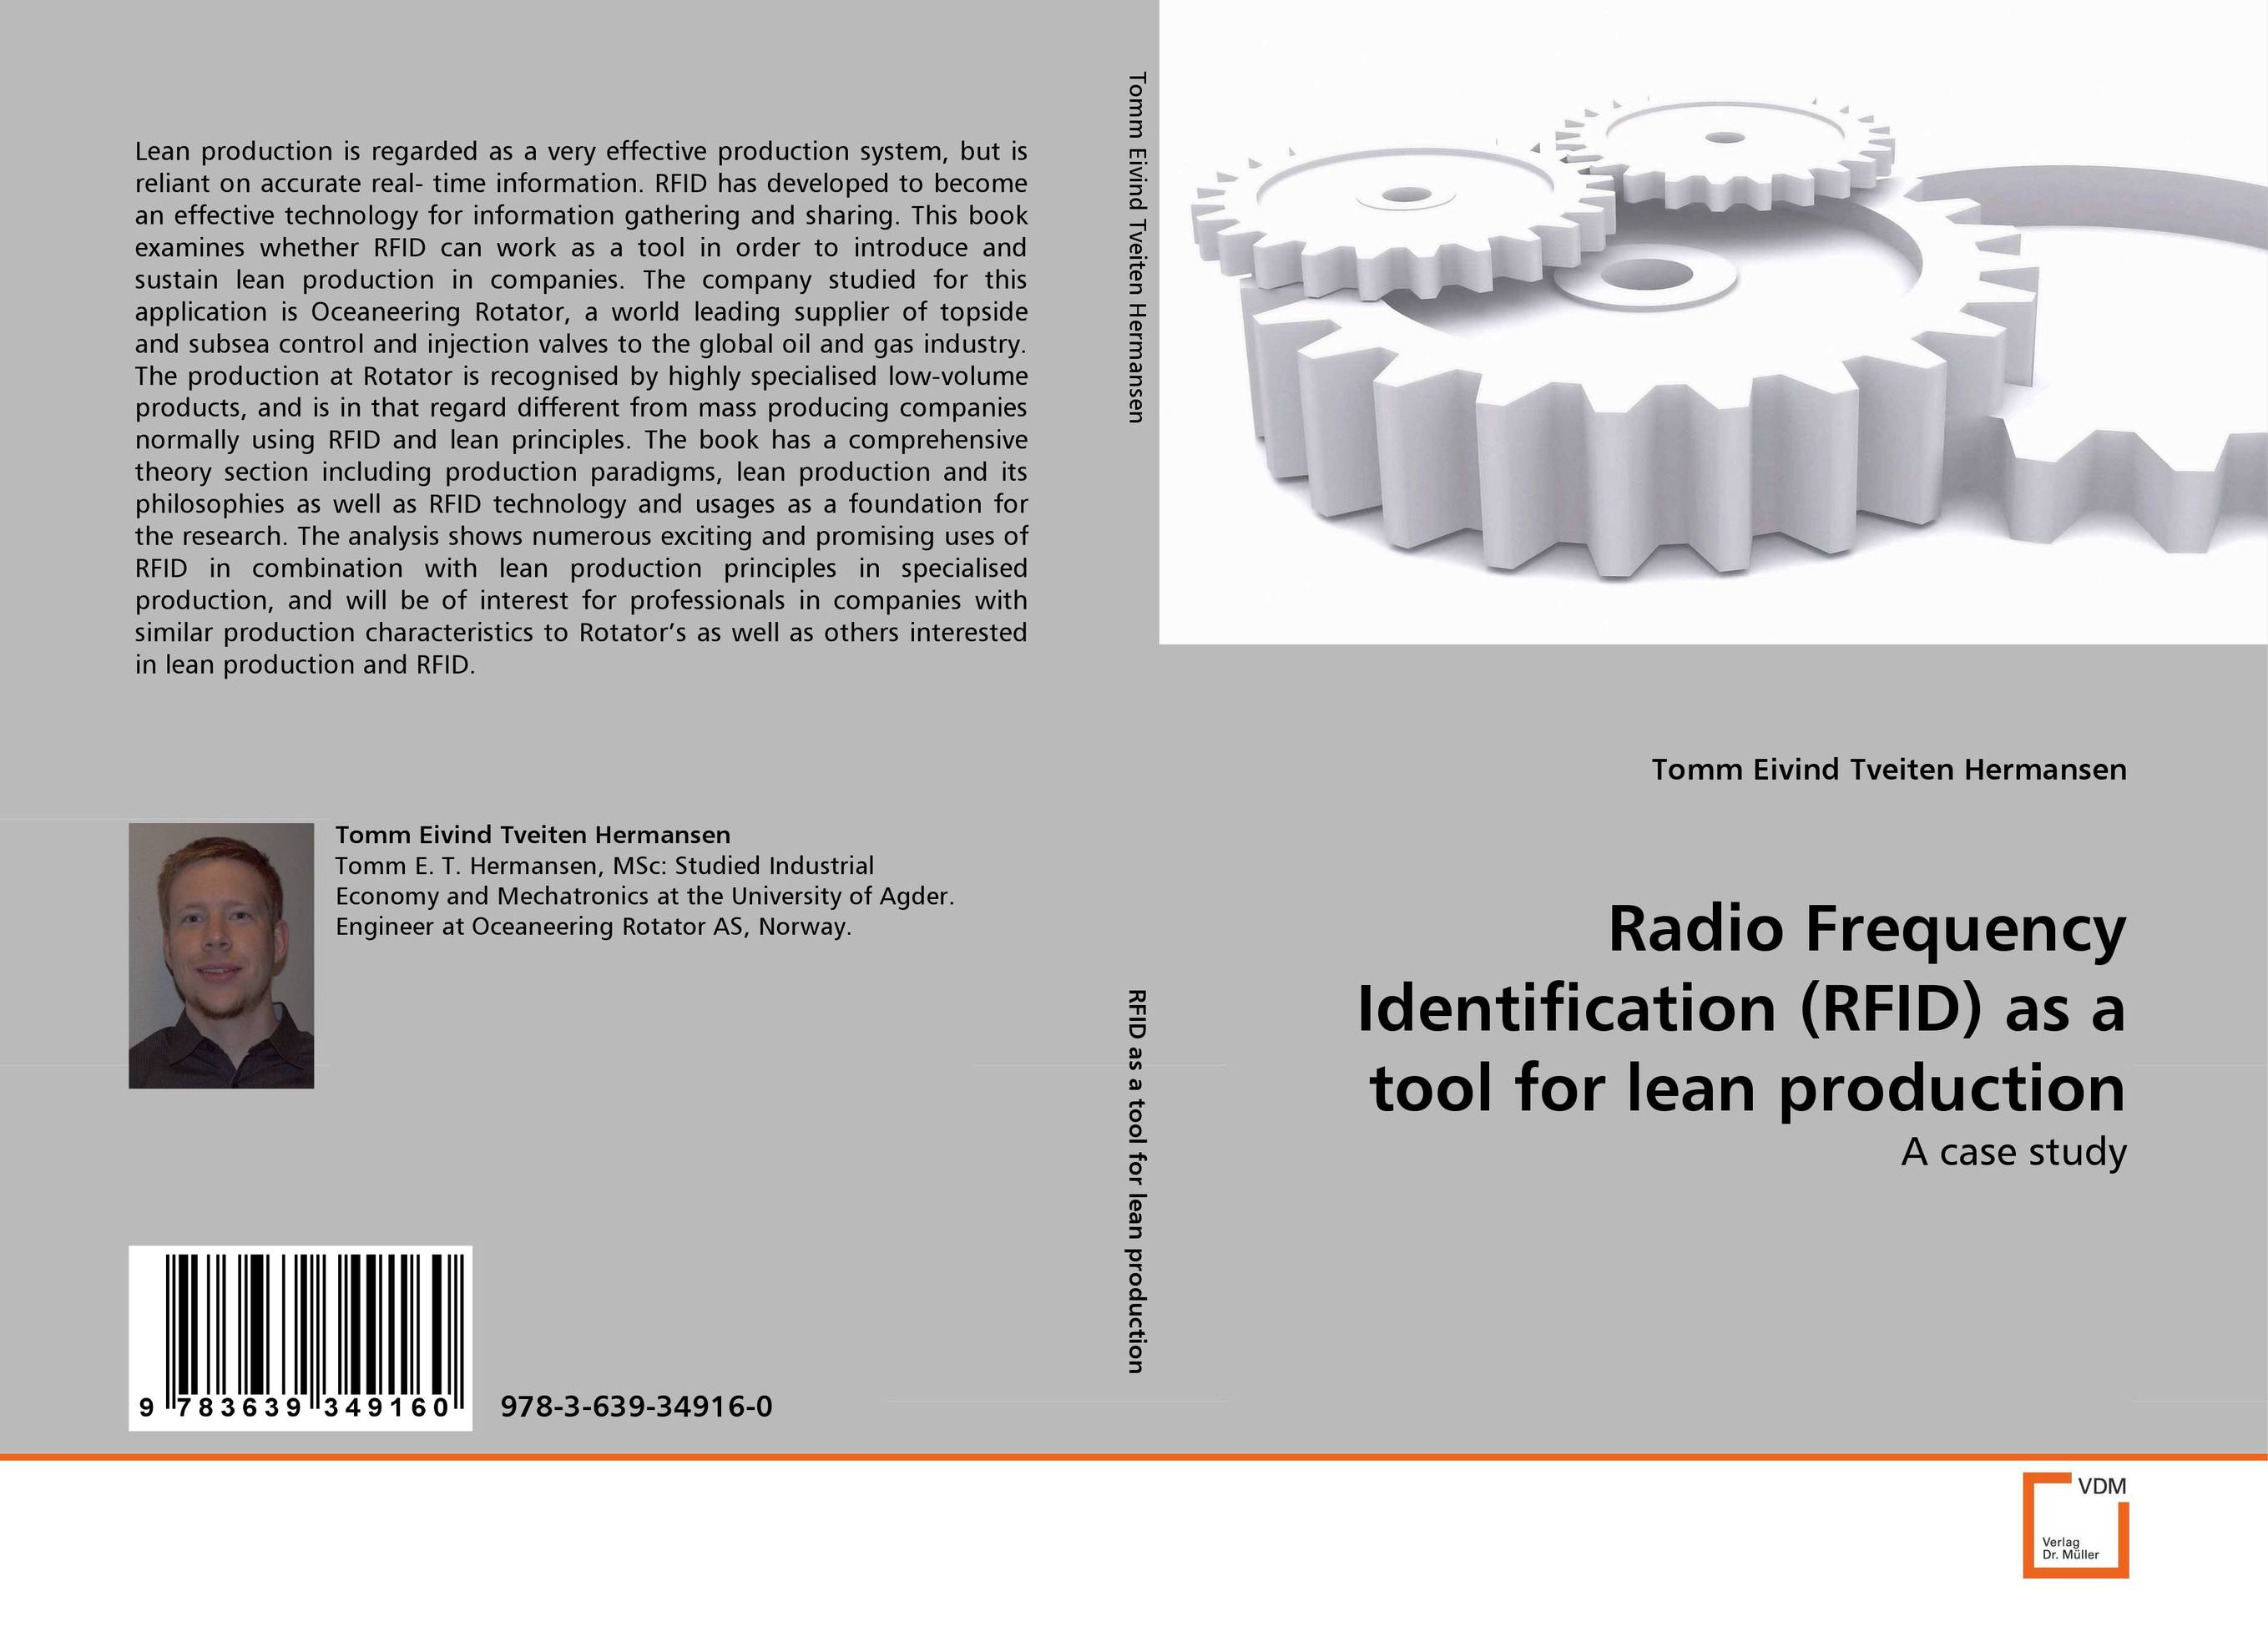 Radio Frequency Identification (RFID) as a tool for lean production presidential nominee will address a gathering